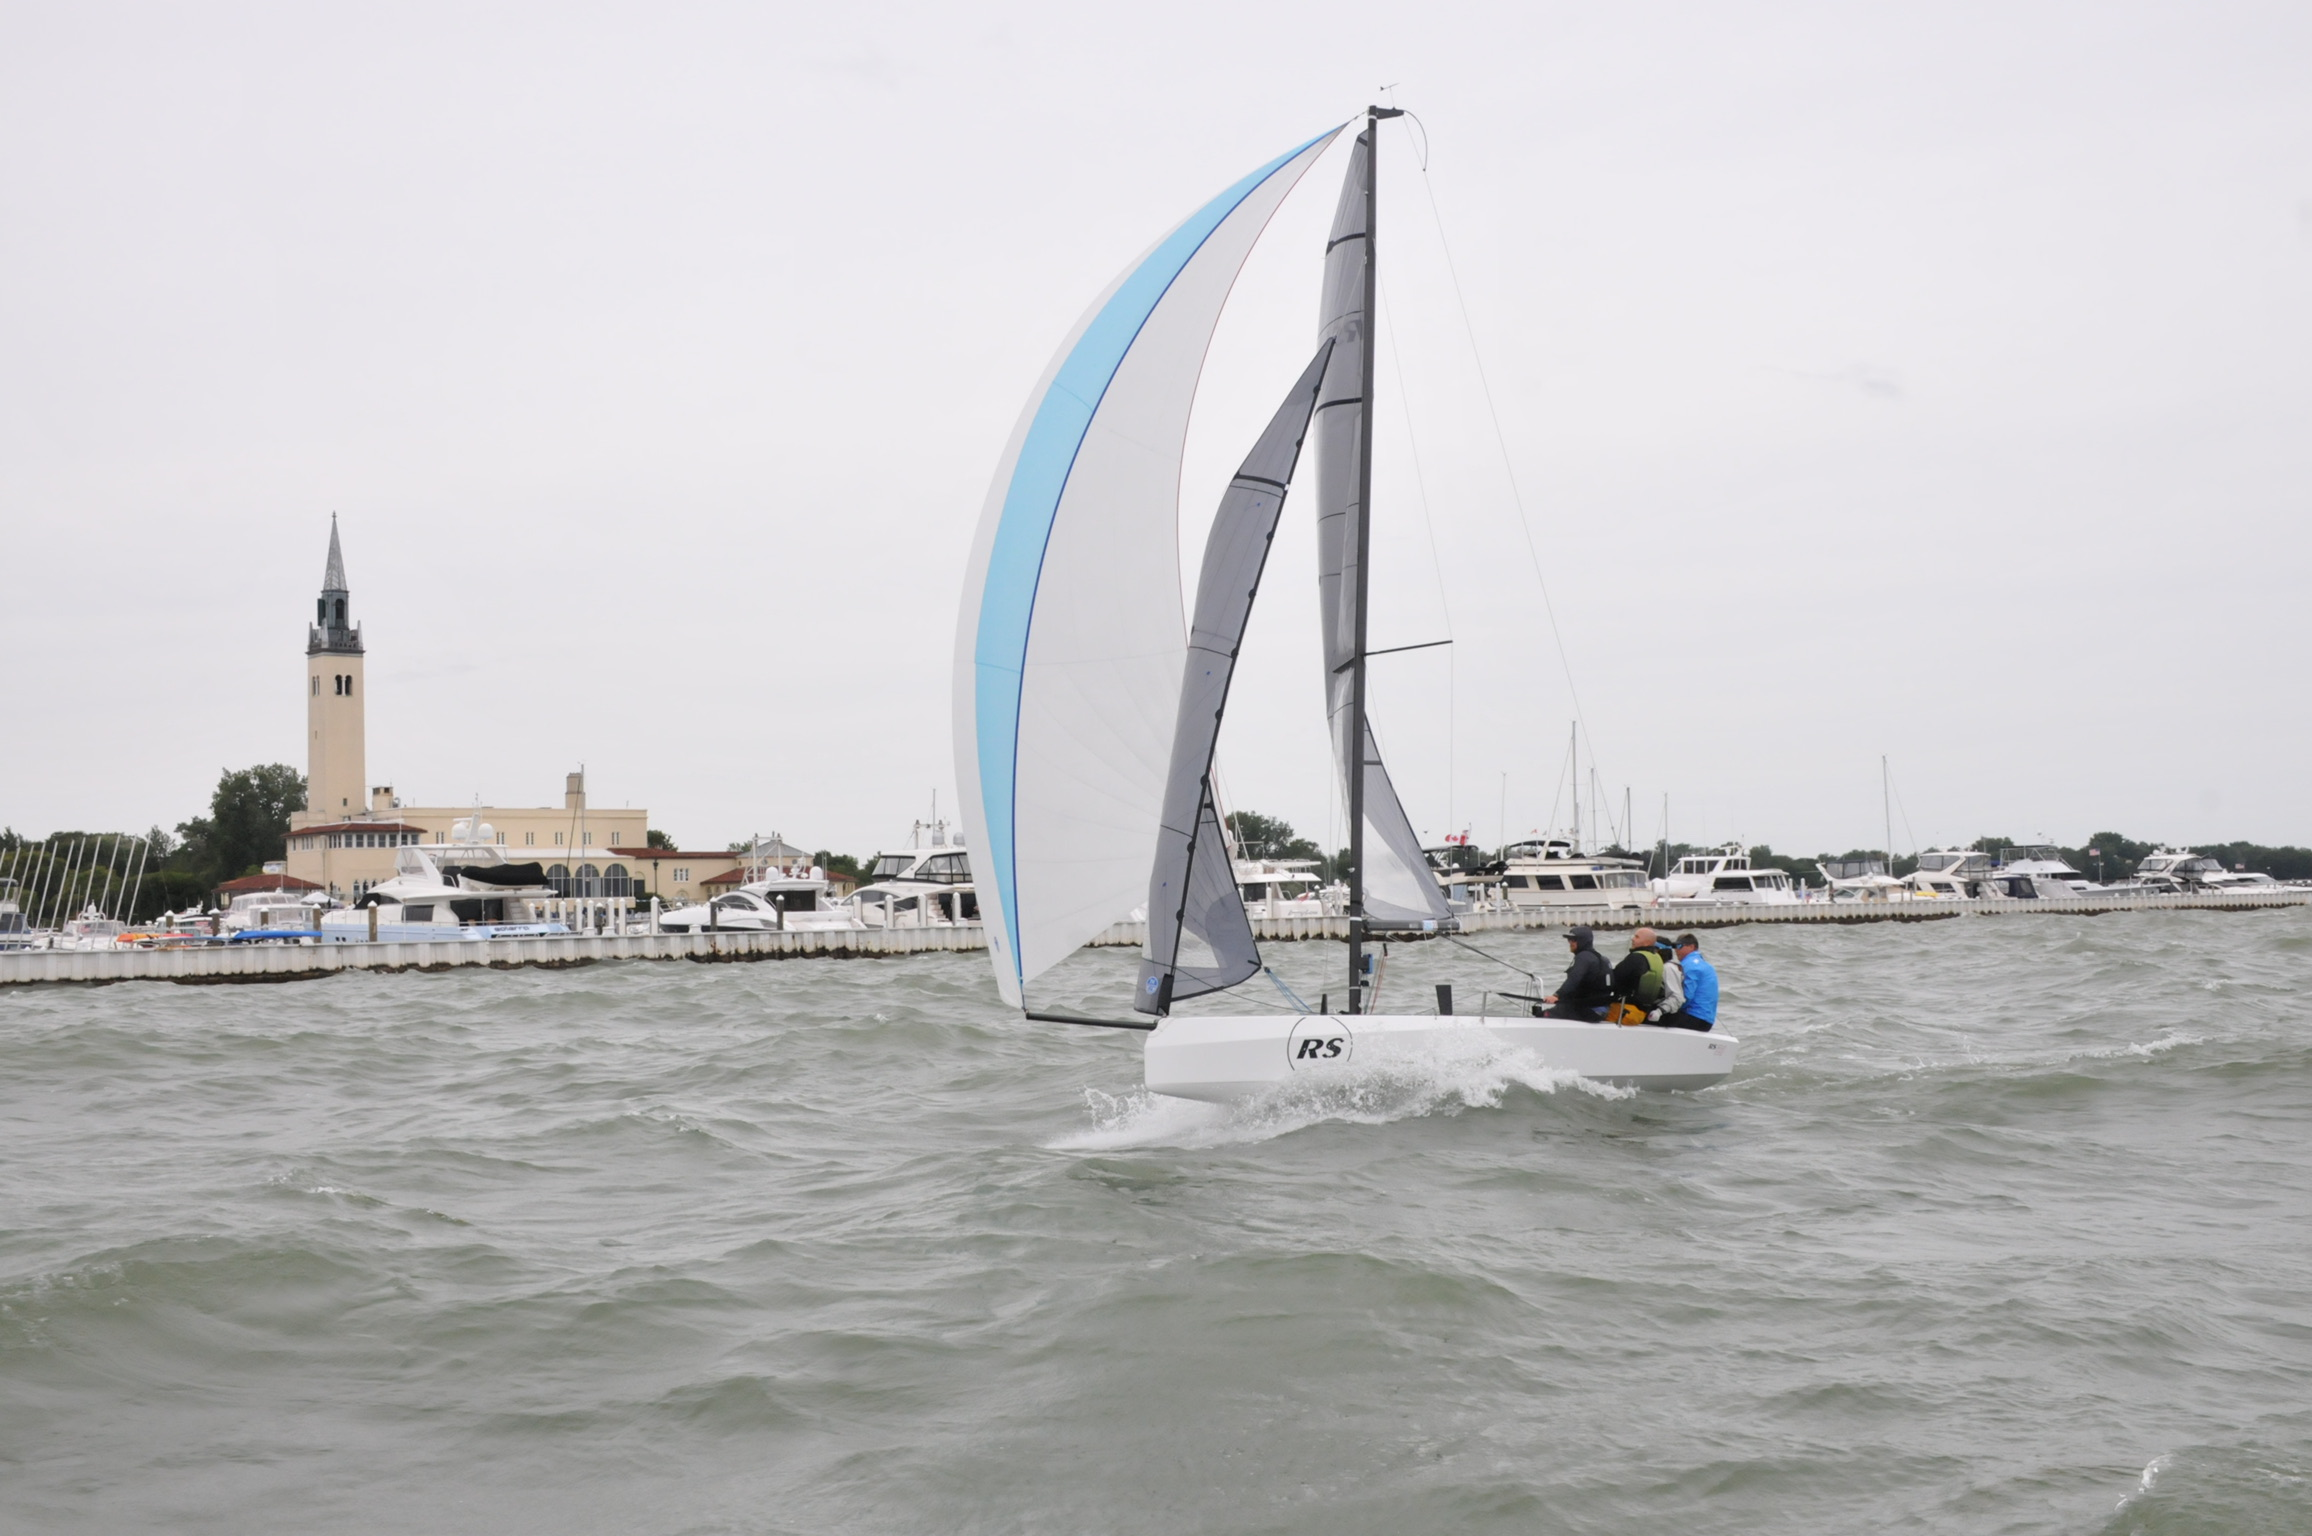 The new RS21 is a stable and fun design. Ed Furry and Sail22 will be the North American RS21 Sales Representative. Please reach out to info@sail22.com with any questions.